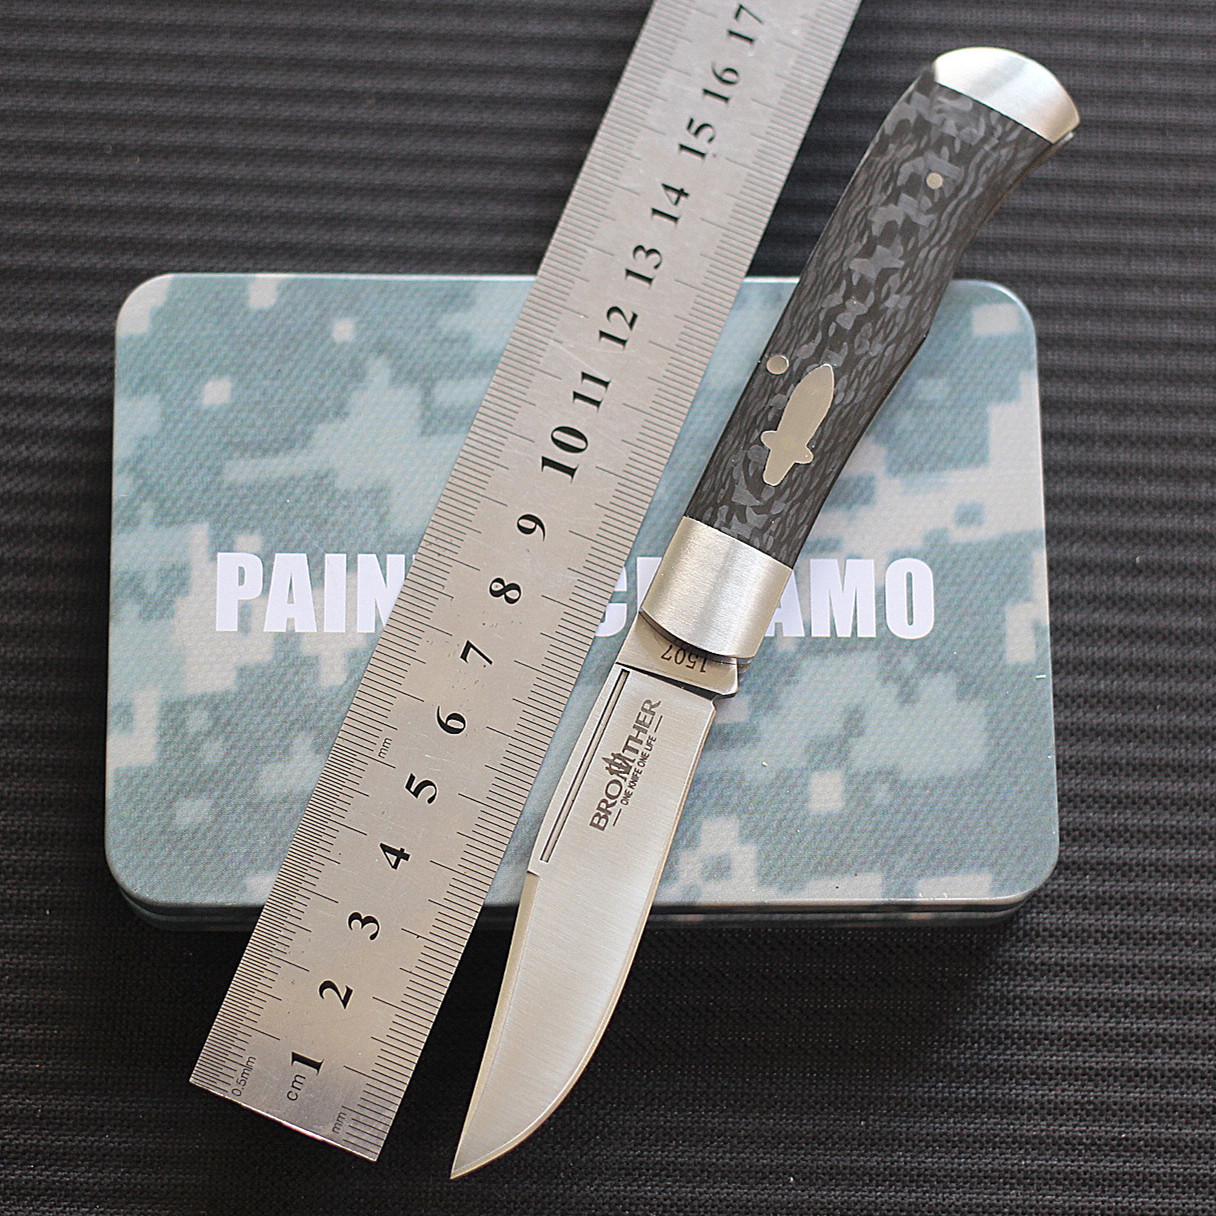 Original Brother pocket folding knife 1507 trout fiber handle VG10 blade material art knife